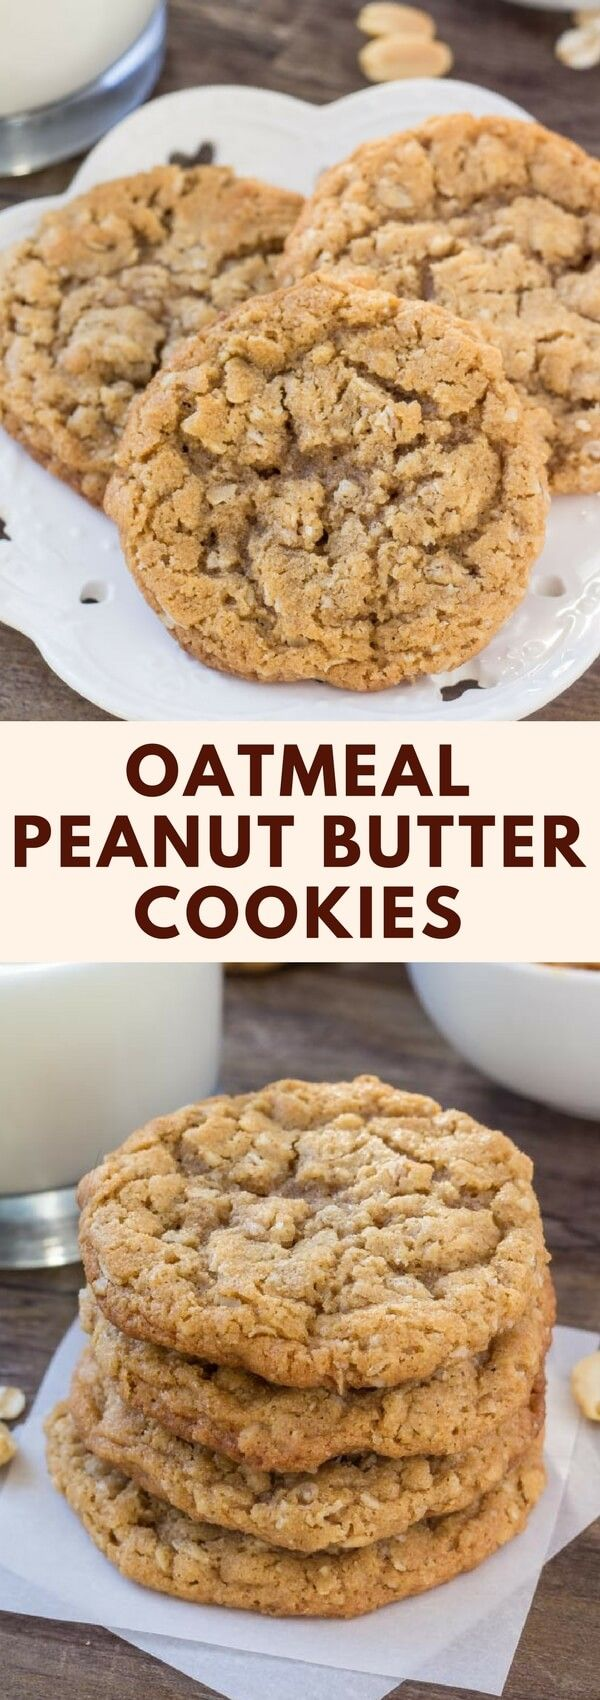 These peanut butter oatmeal cookies are soft, chewy and filled with peanut butter goodness. The oatmeal adds tons of texture, and it's a quick and easy recipe that all peanut butter fans are sure to love. #cookies #peanutbutter #recipes #oatmeal